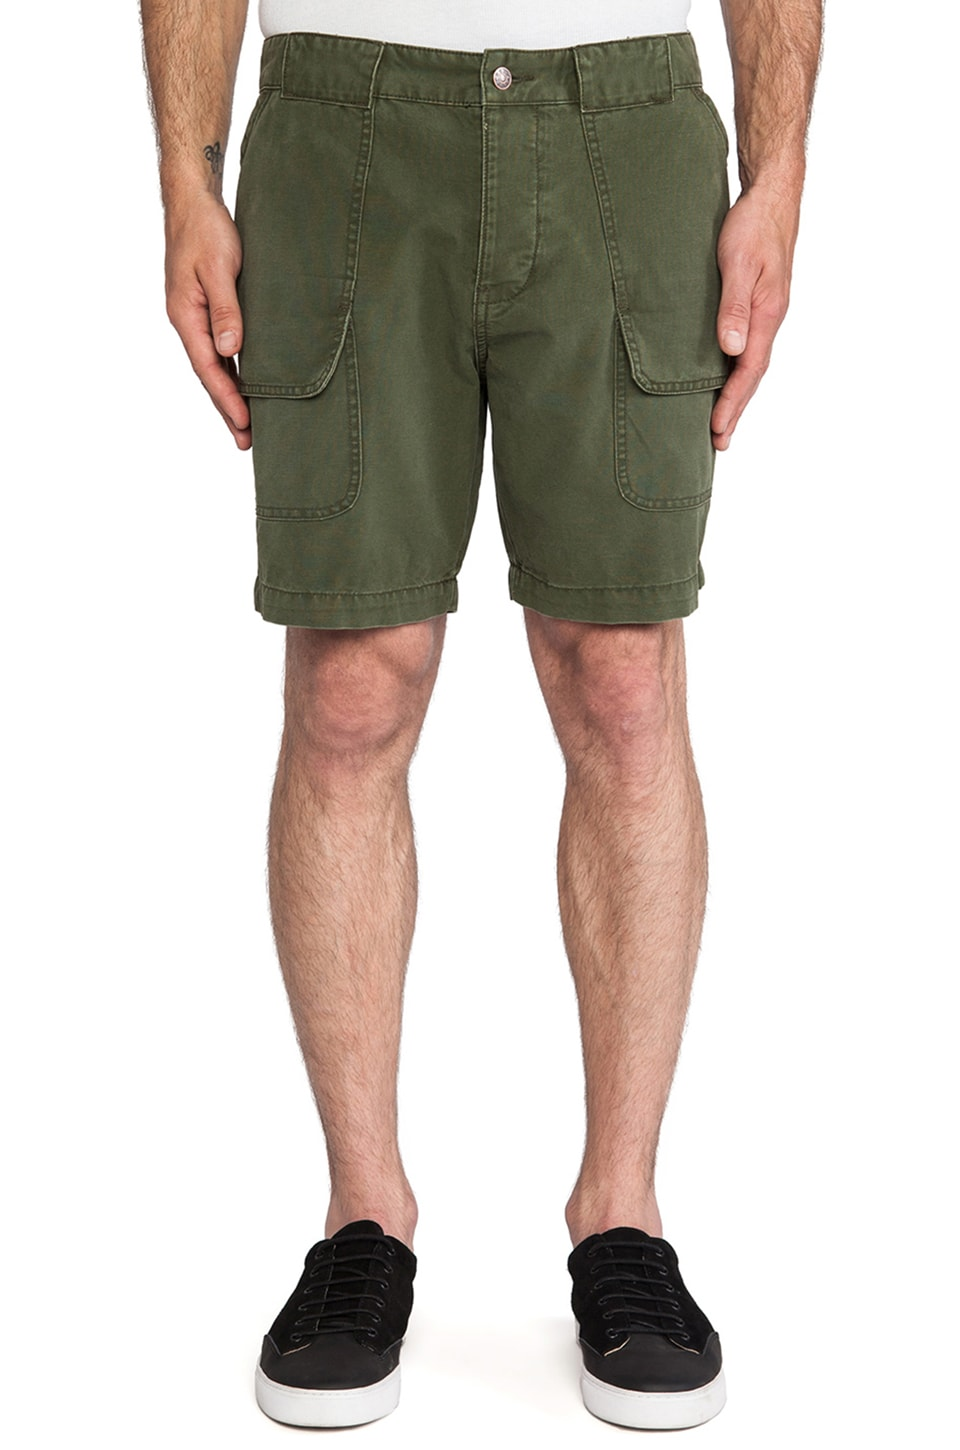 Deus Ex Machina Jonet Cargo Short in Olive